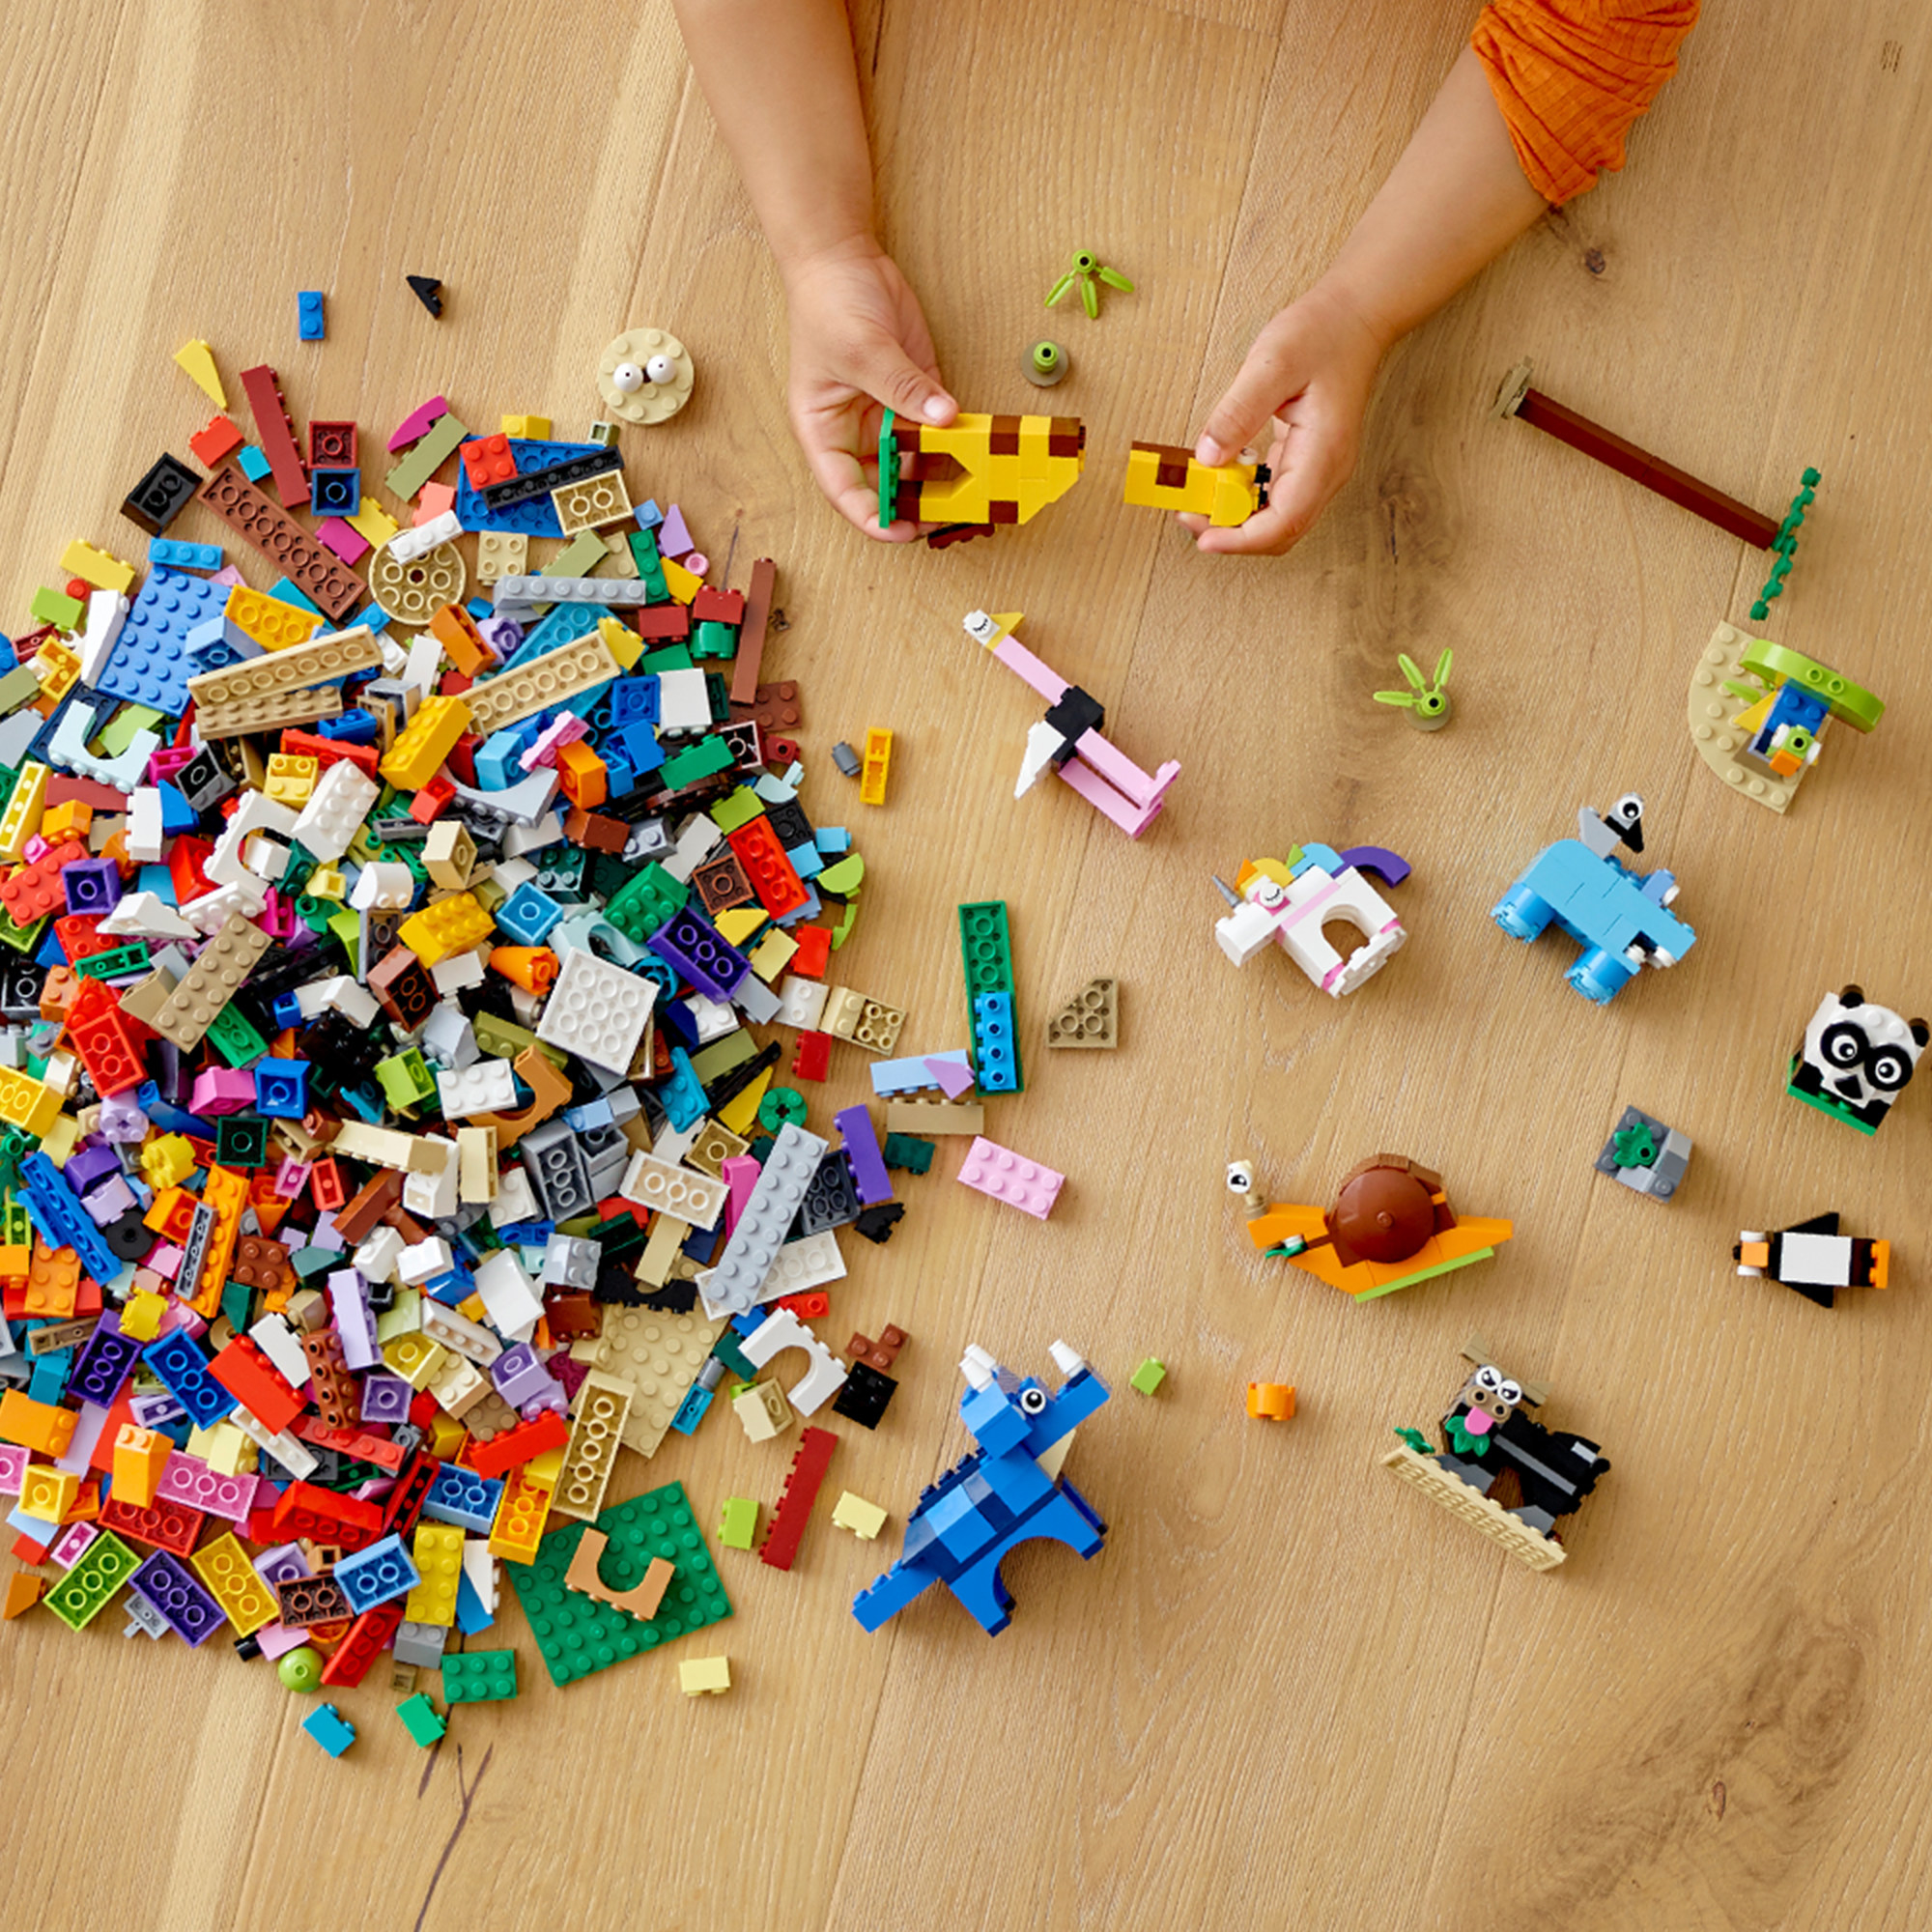 child playing with giraffe blocks with lots of colorful lego bricks lying around